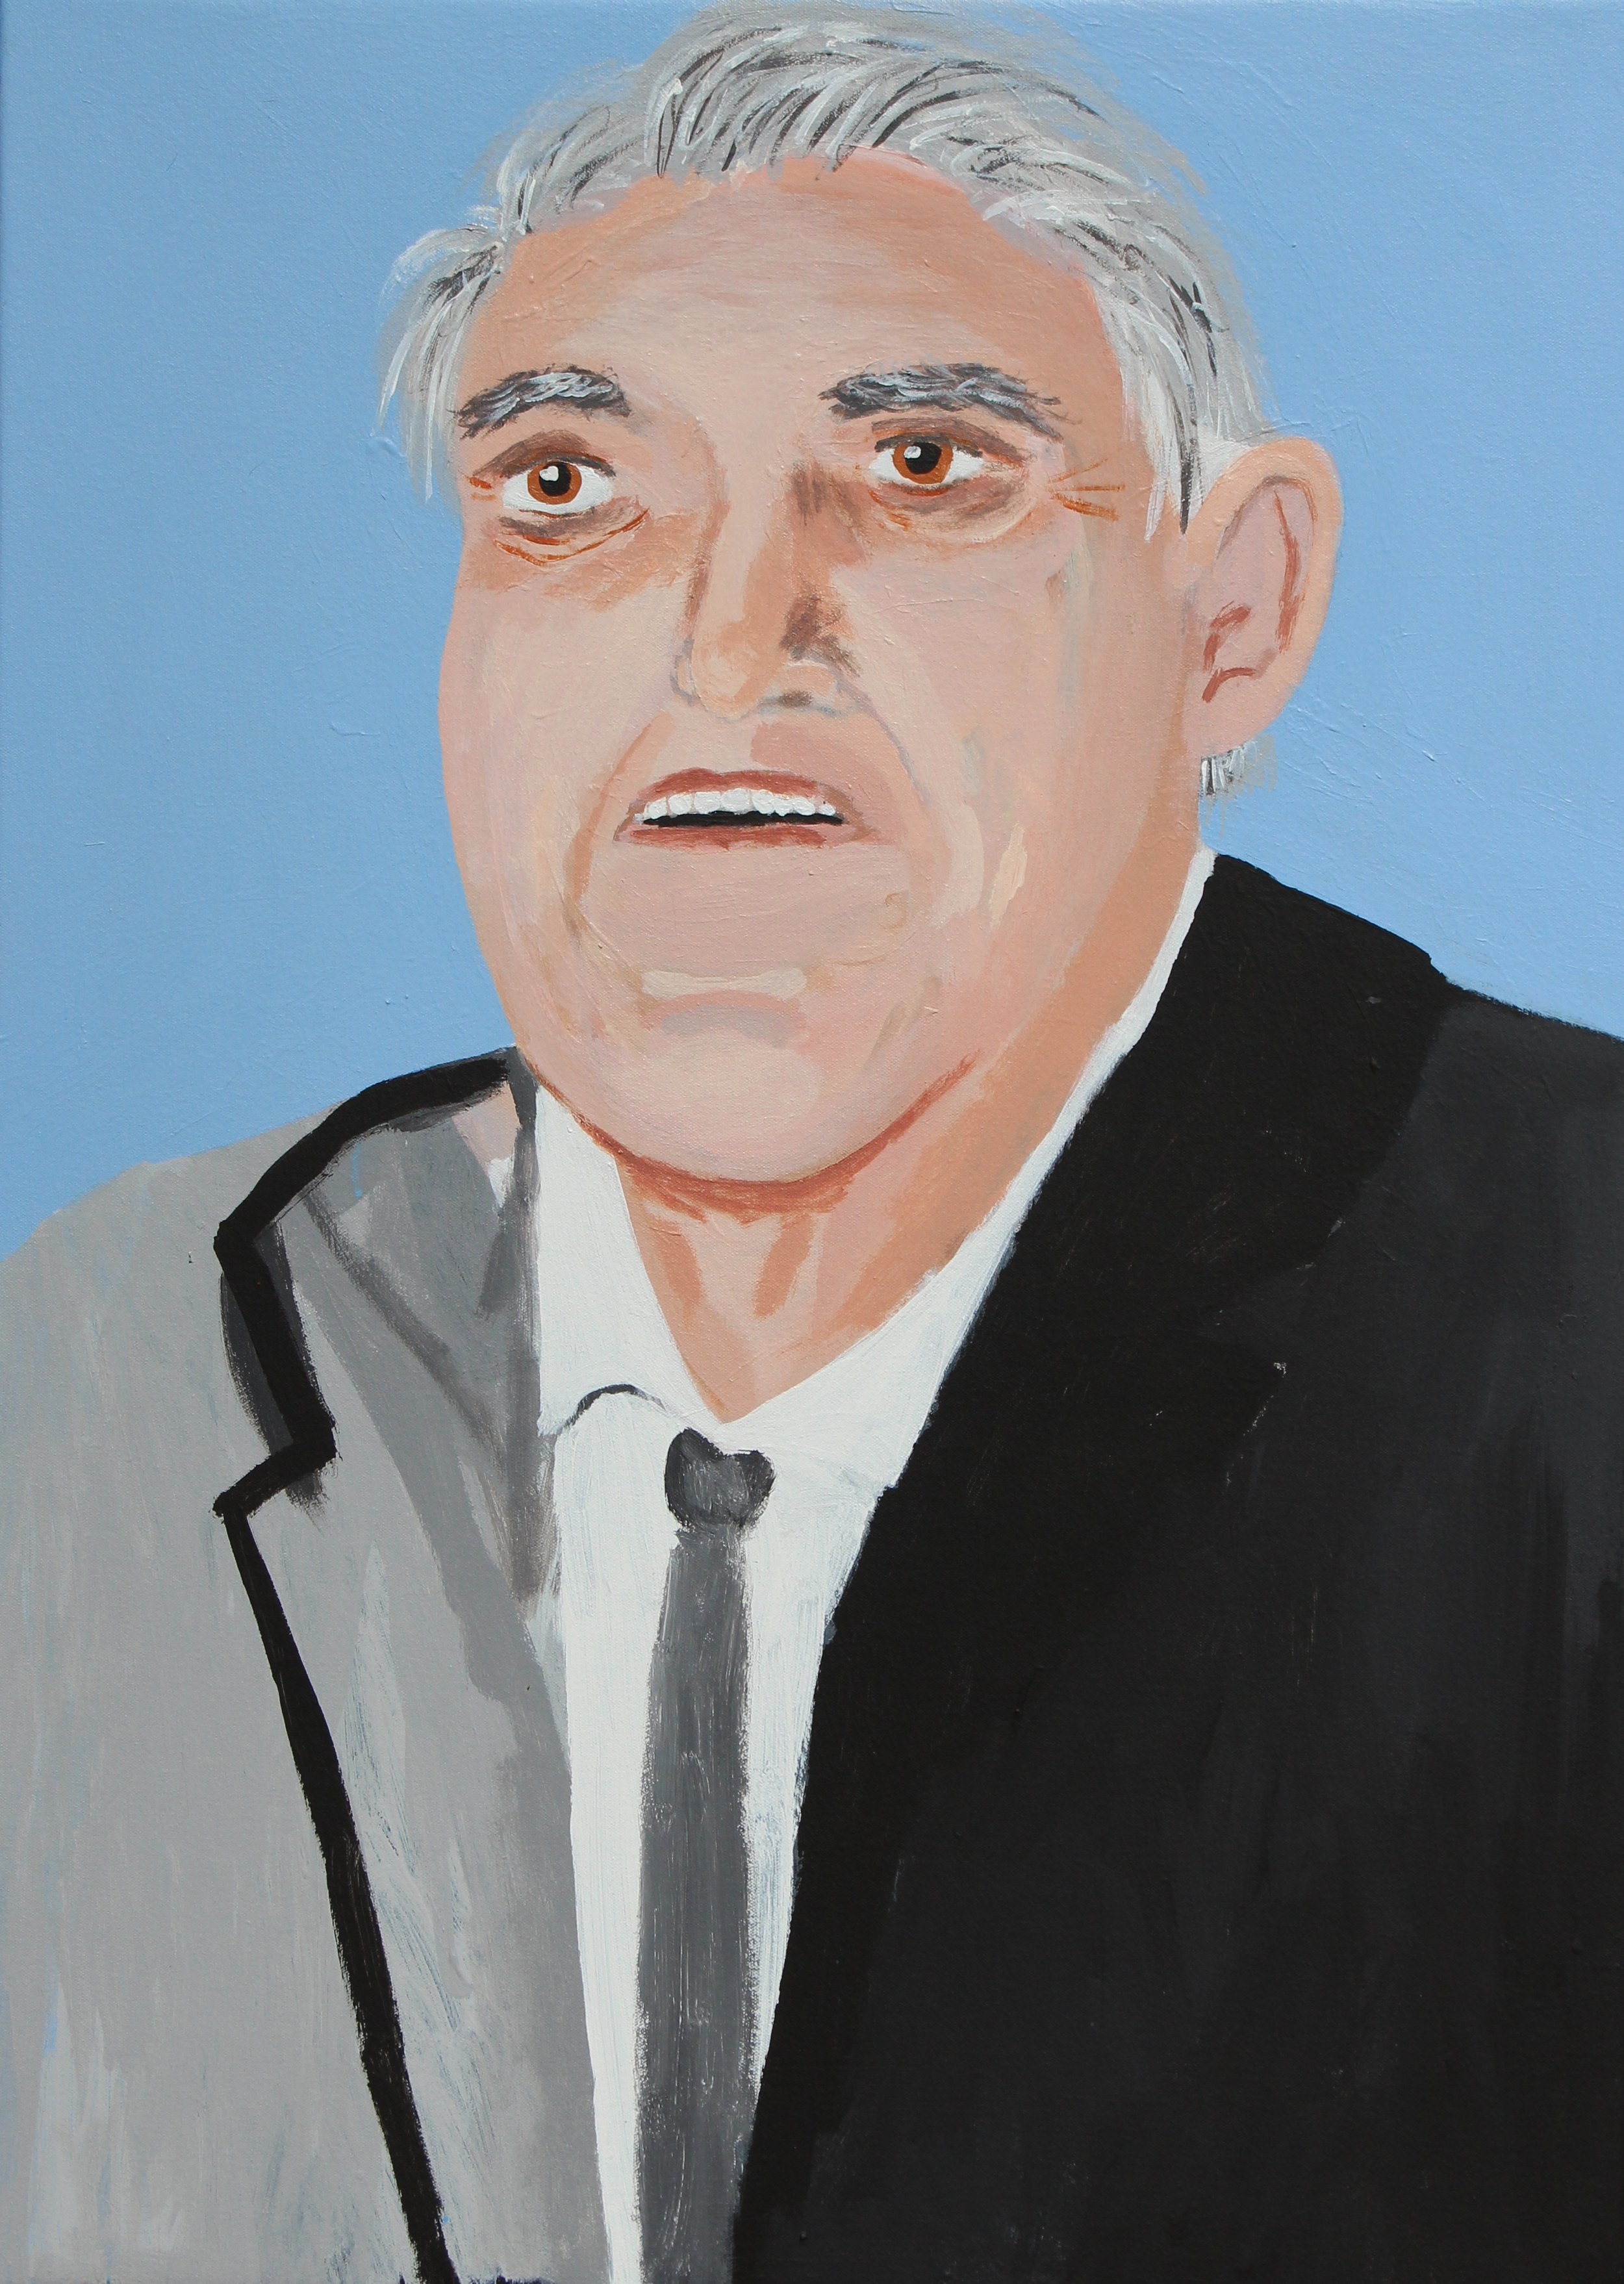 Vincent Namatijira,  The Richest (Harry Triguboff),  2017, acrylic on canvas, 91 x 67 cm. Courtesy of the artist, THIS IS NO FANTASY + dianne tanzer gallery and Iwantja Arts.